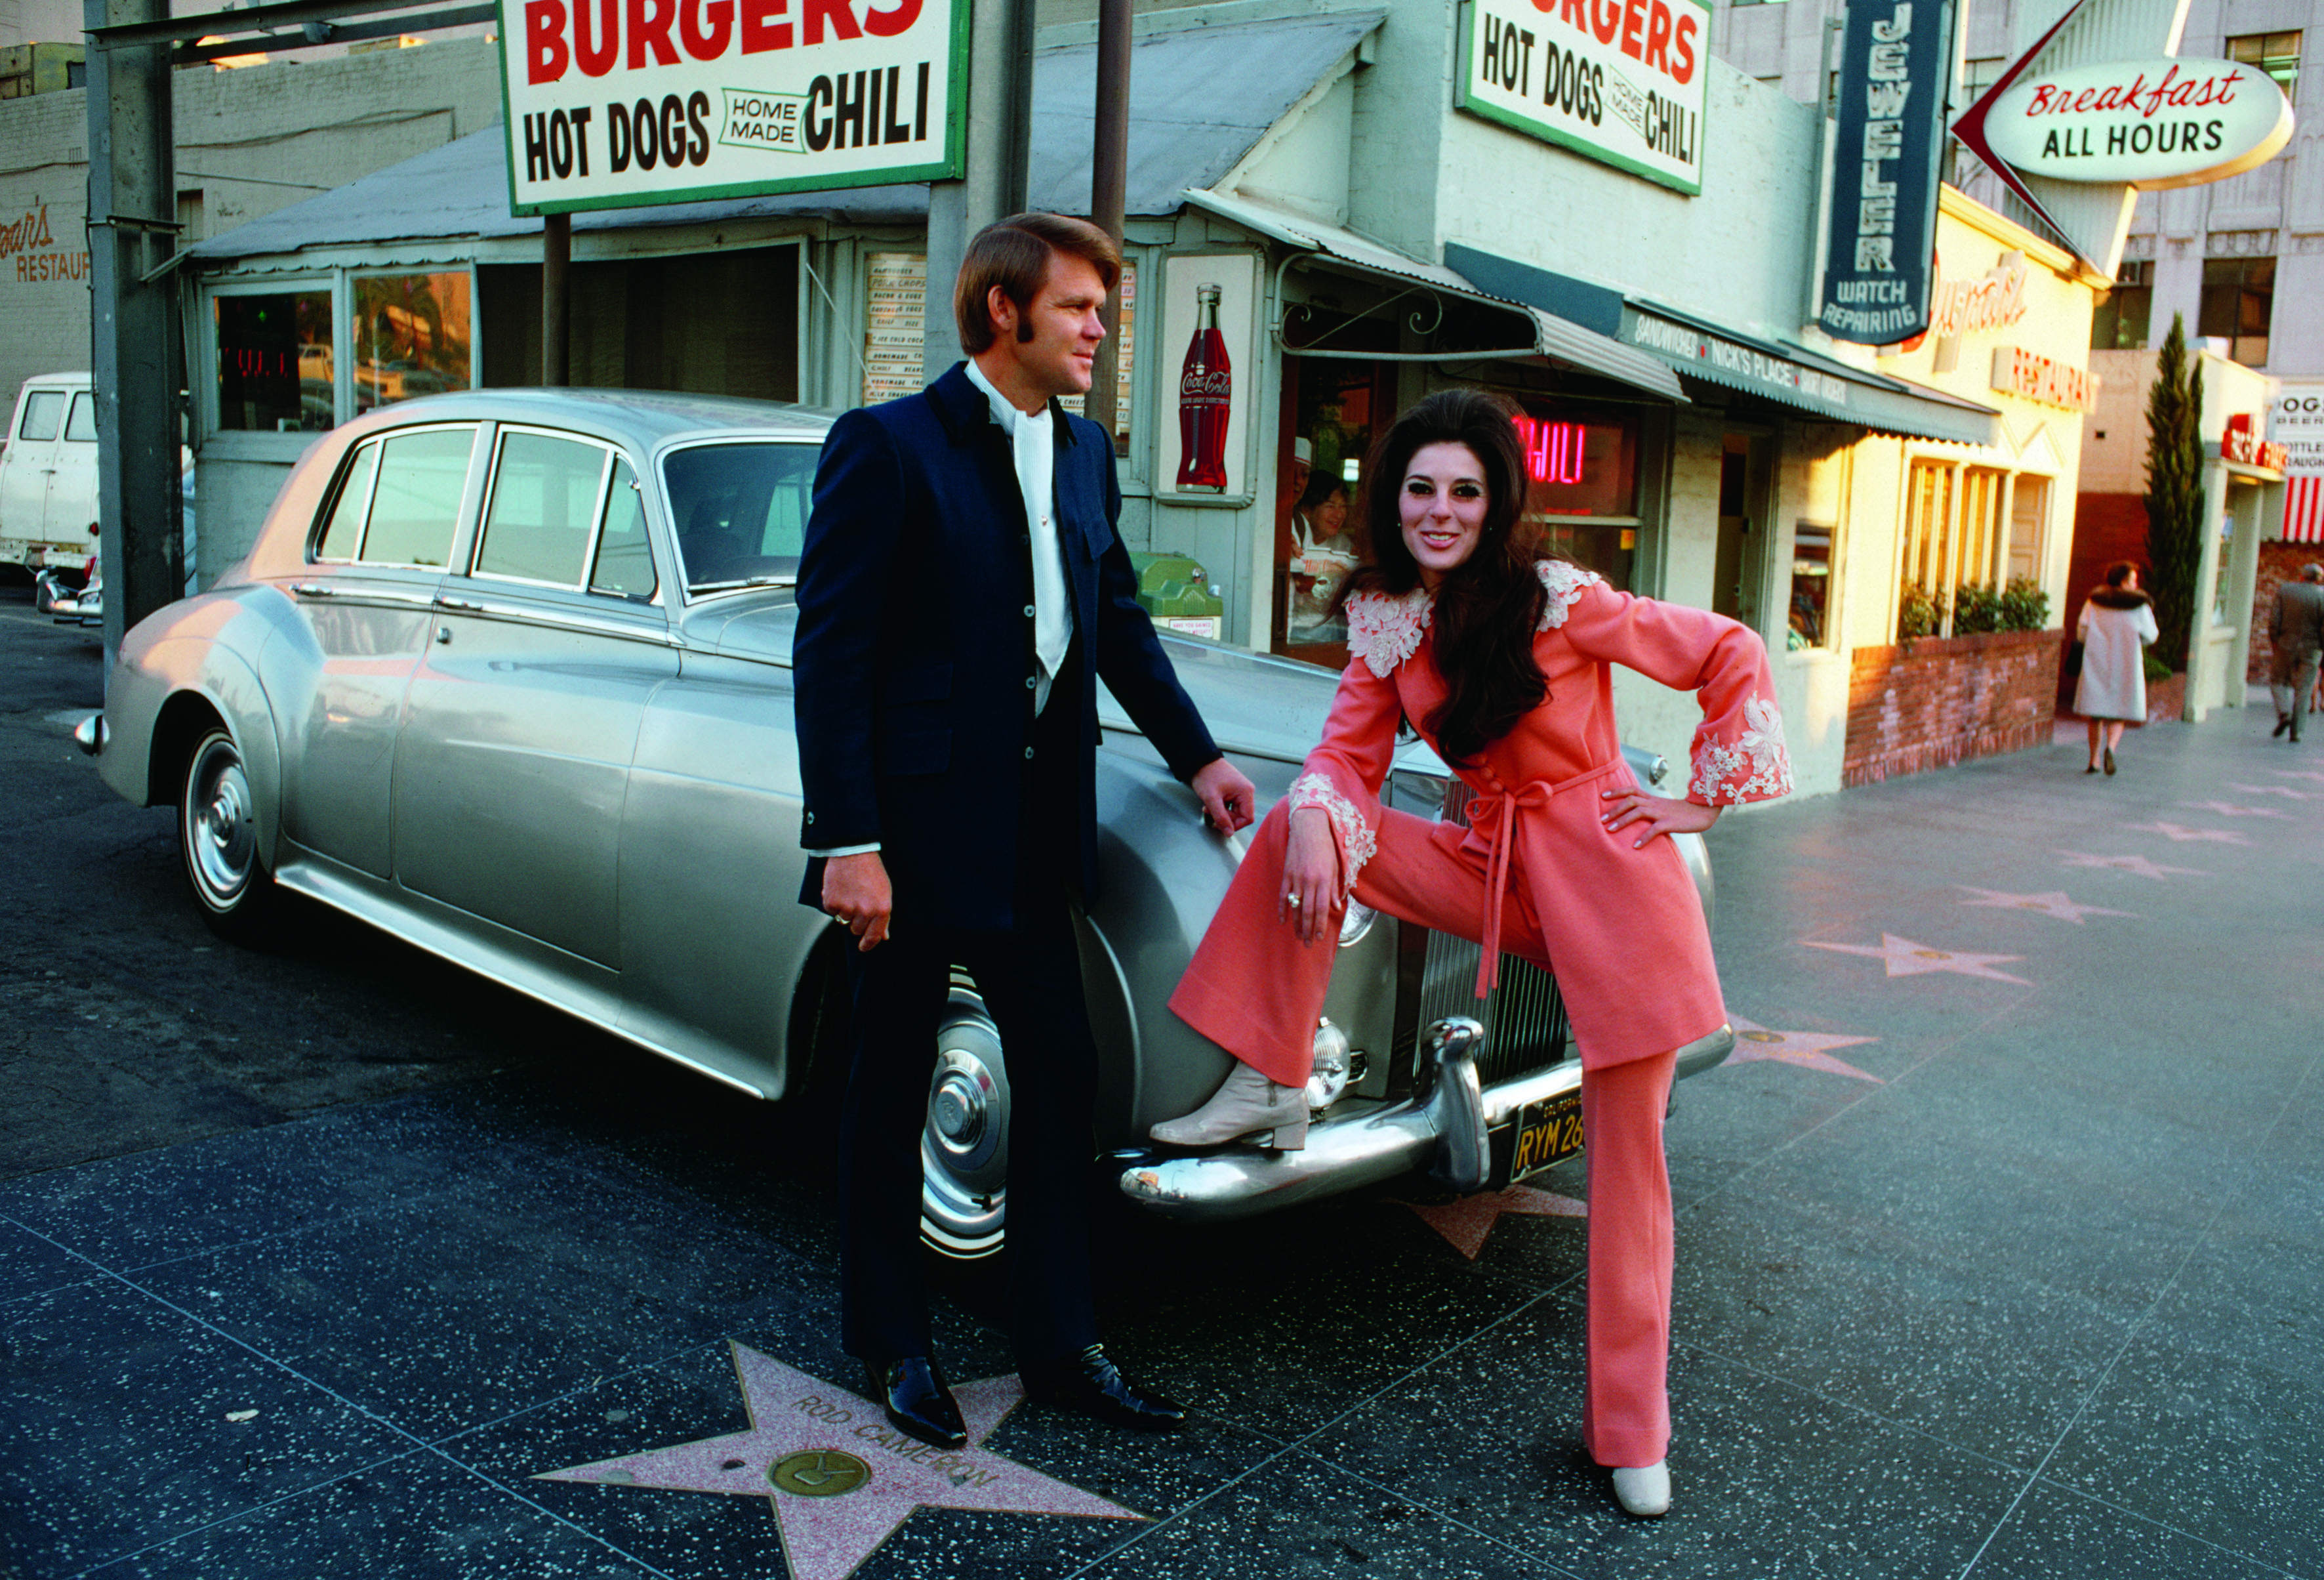 Glen Campbell and Bobby Gentry in front of Nick's Burgers on Hollywood Boulevard.